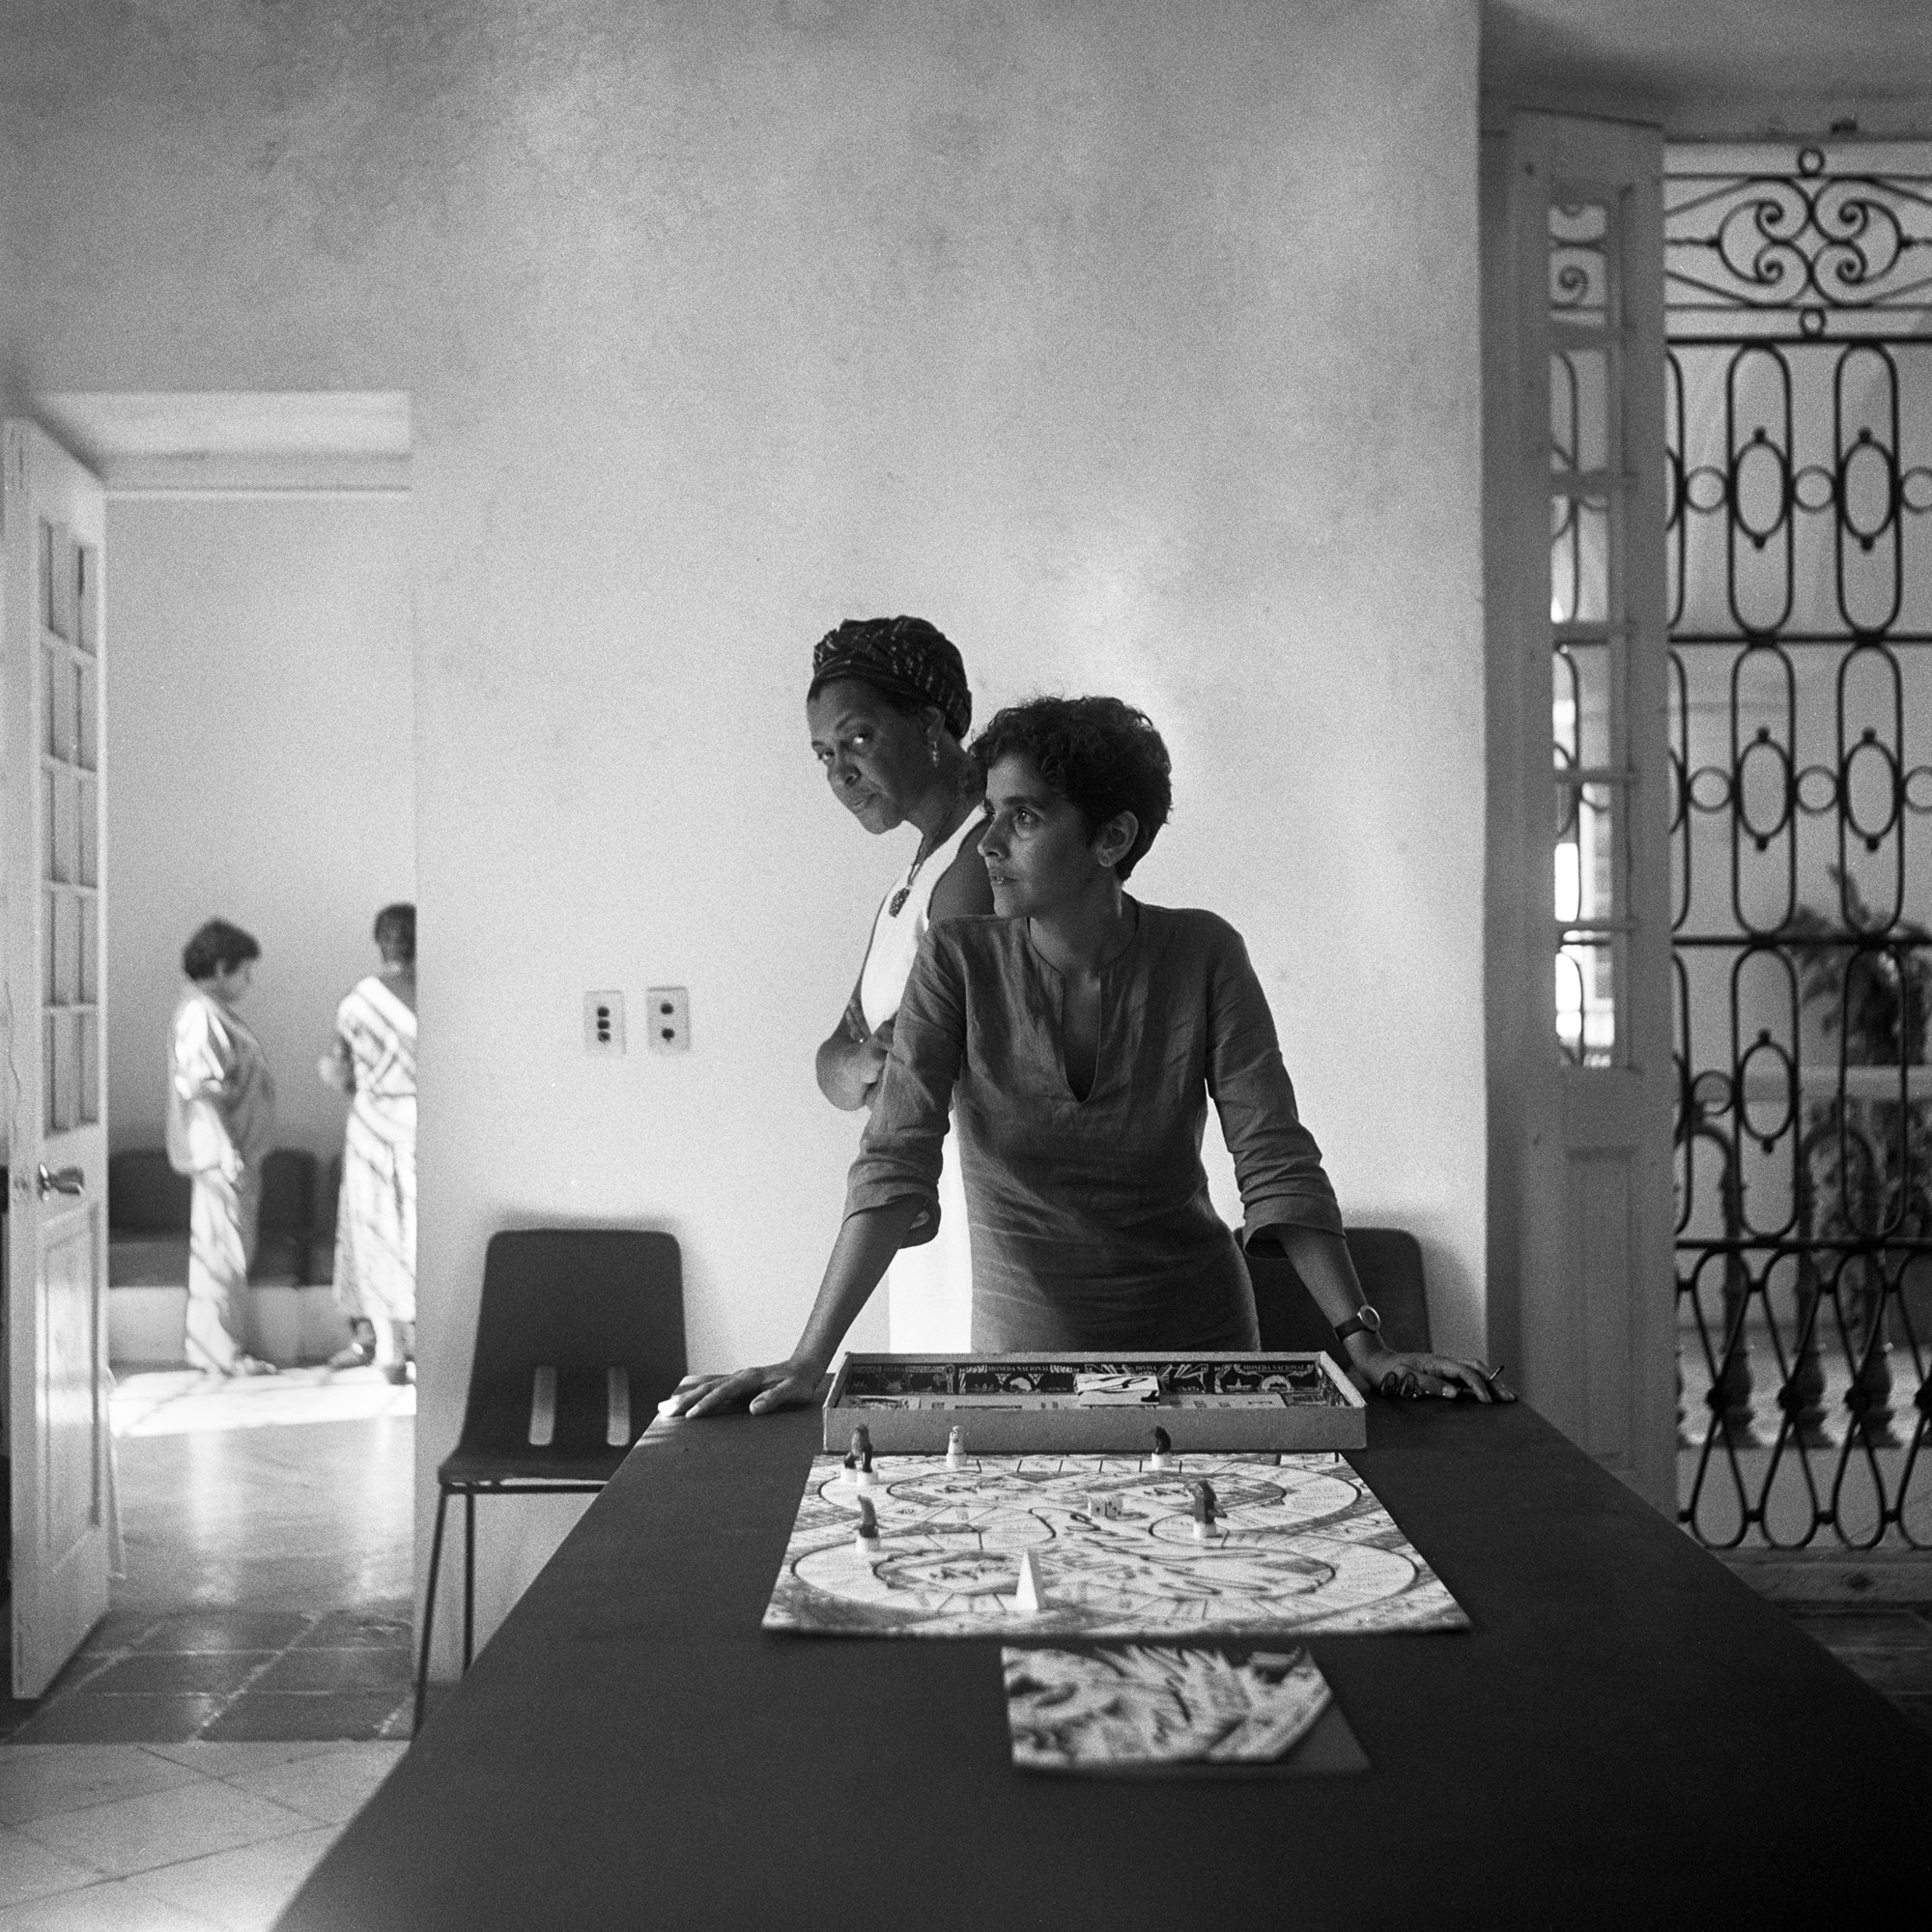 Carrie Mae Weems, African American Art, Black Art, KOLUMN Magazine, KOLUMN, KINDR'D Magazine, KINDR'D, Willoughby Avenue